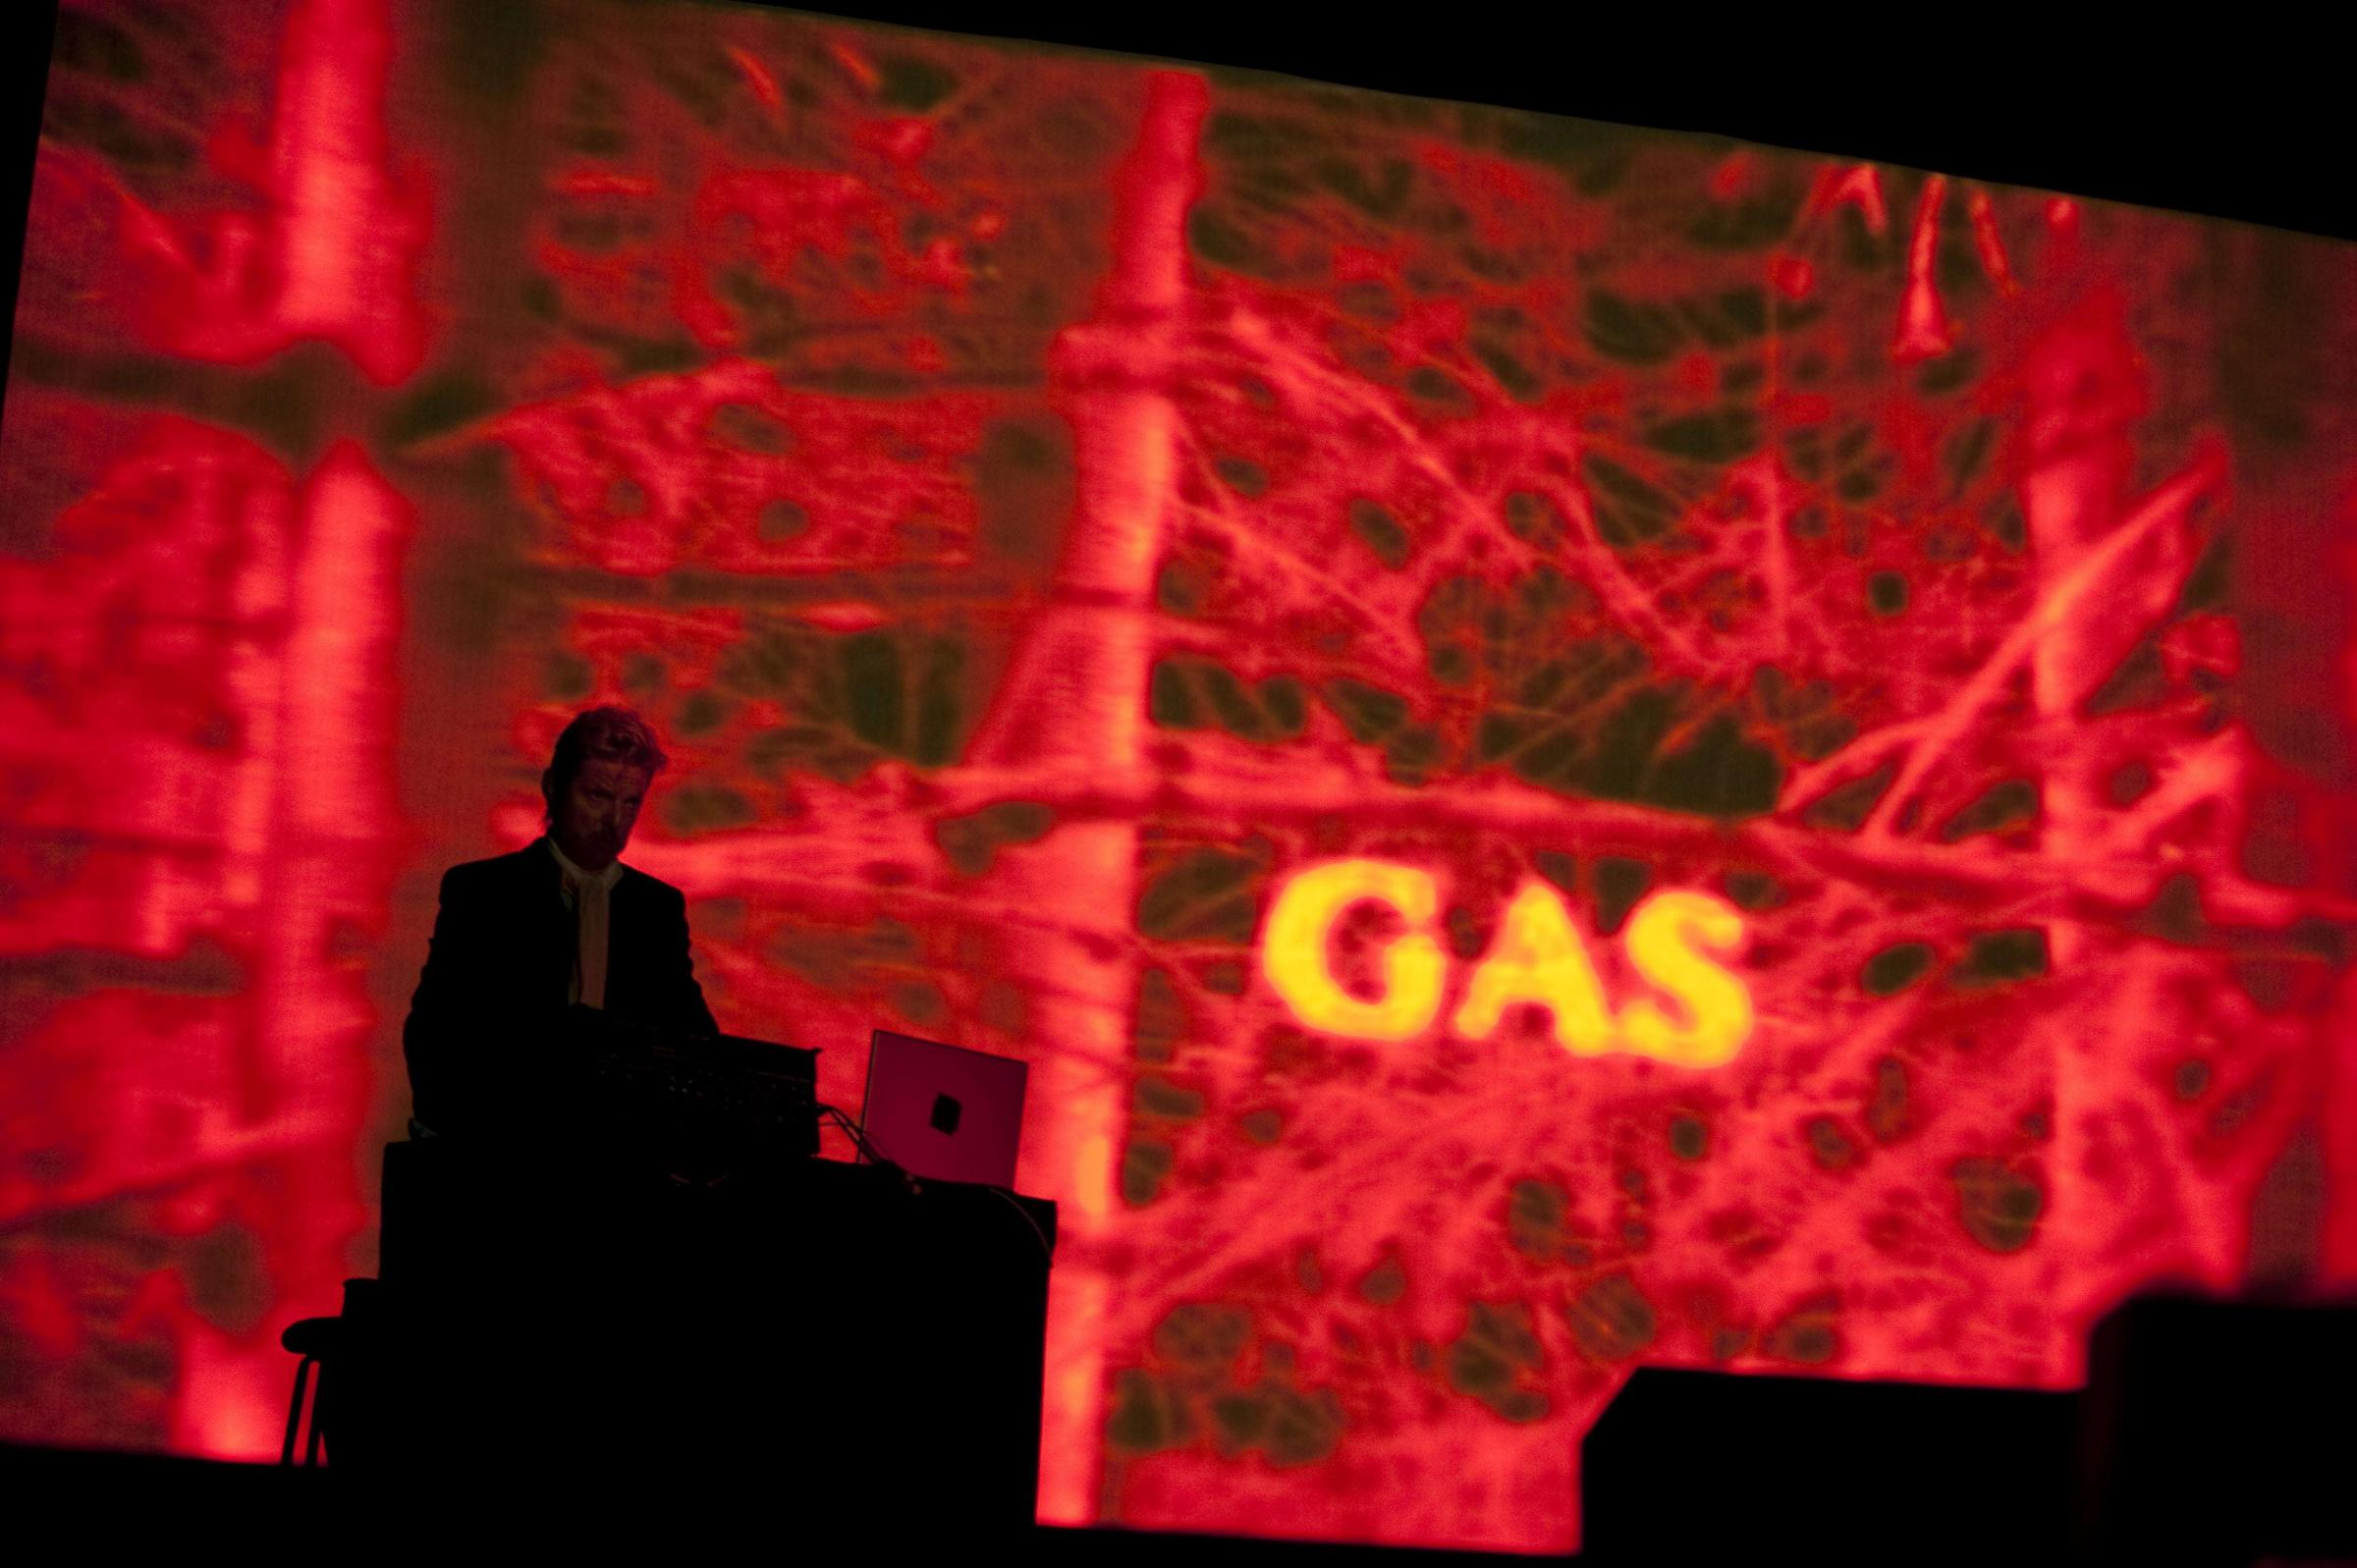 Wolfgang Voigt presenting Gas